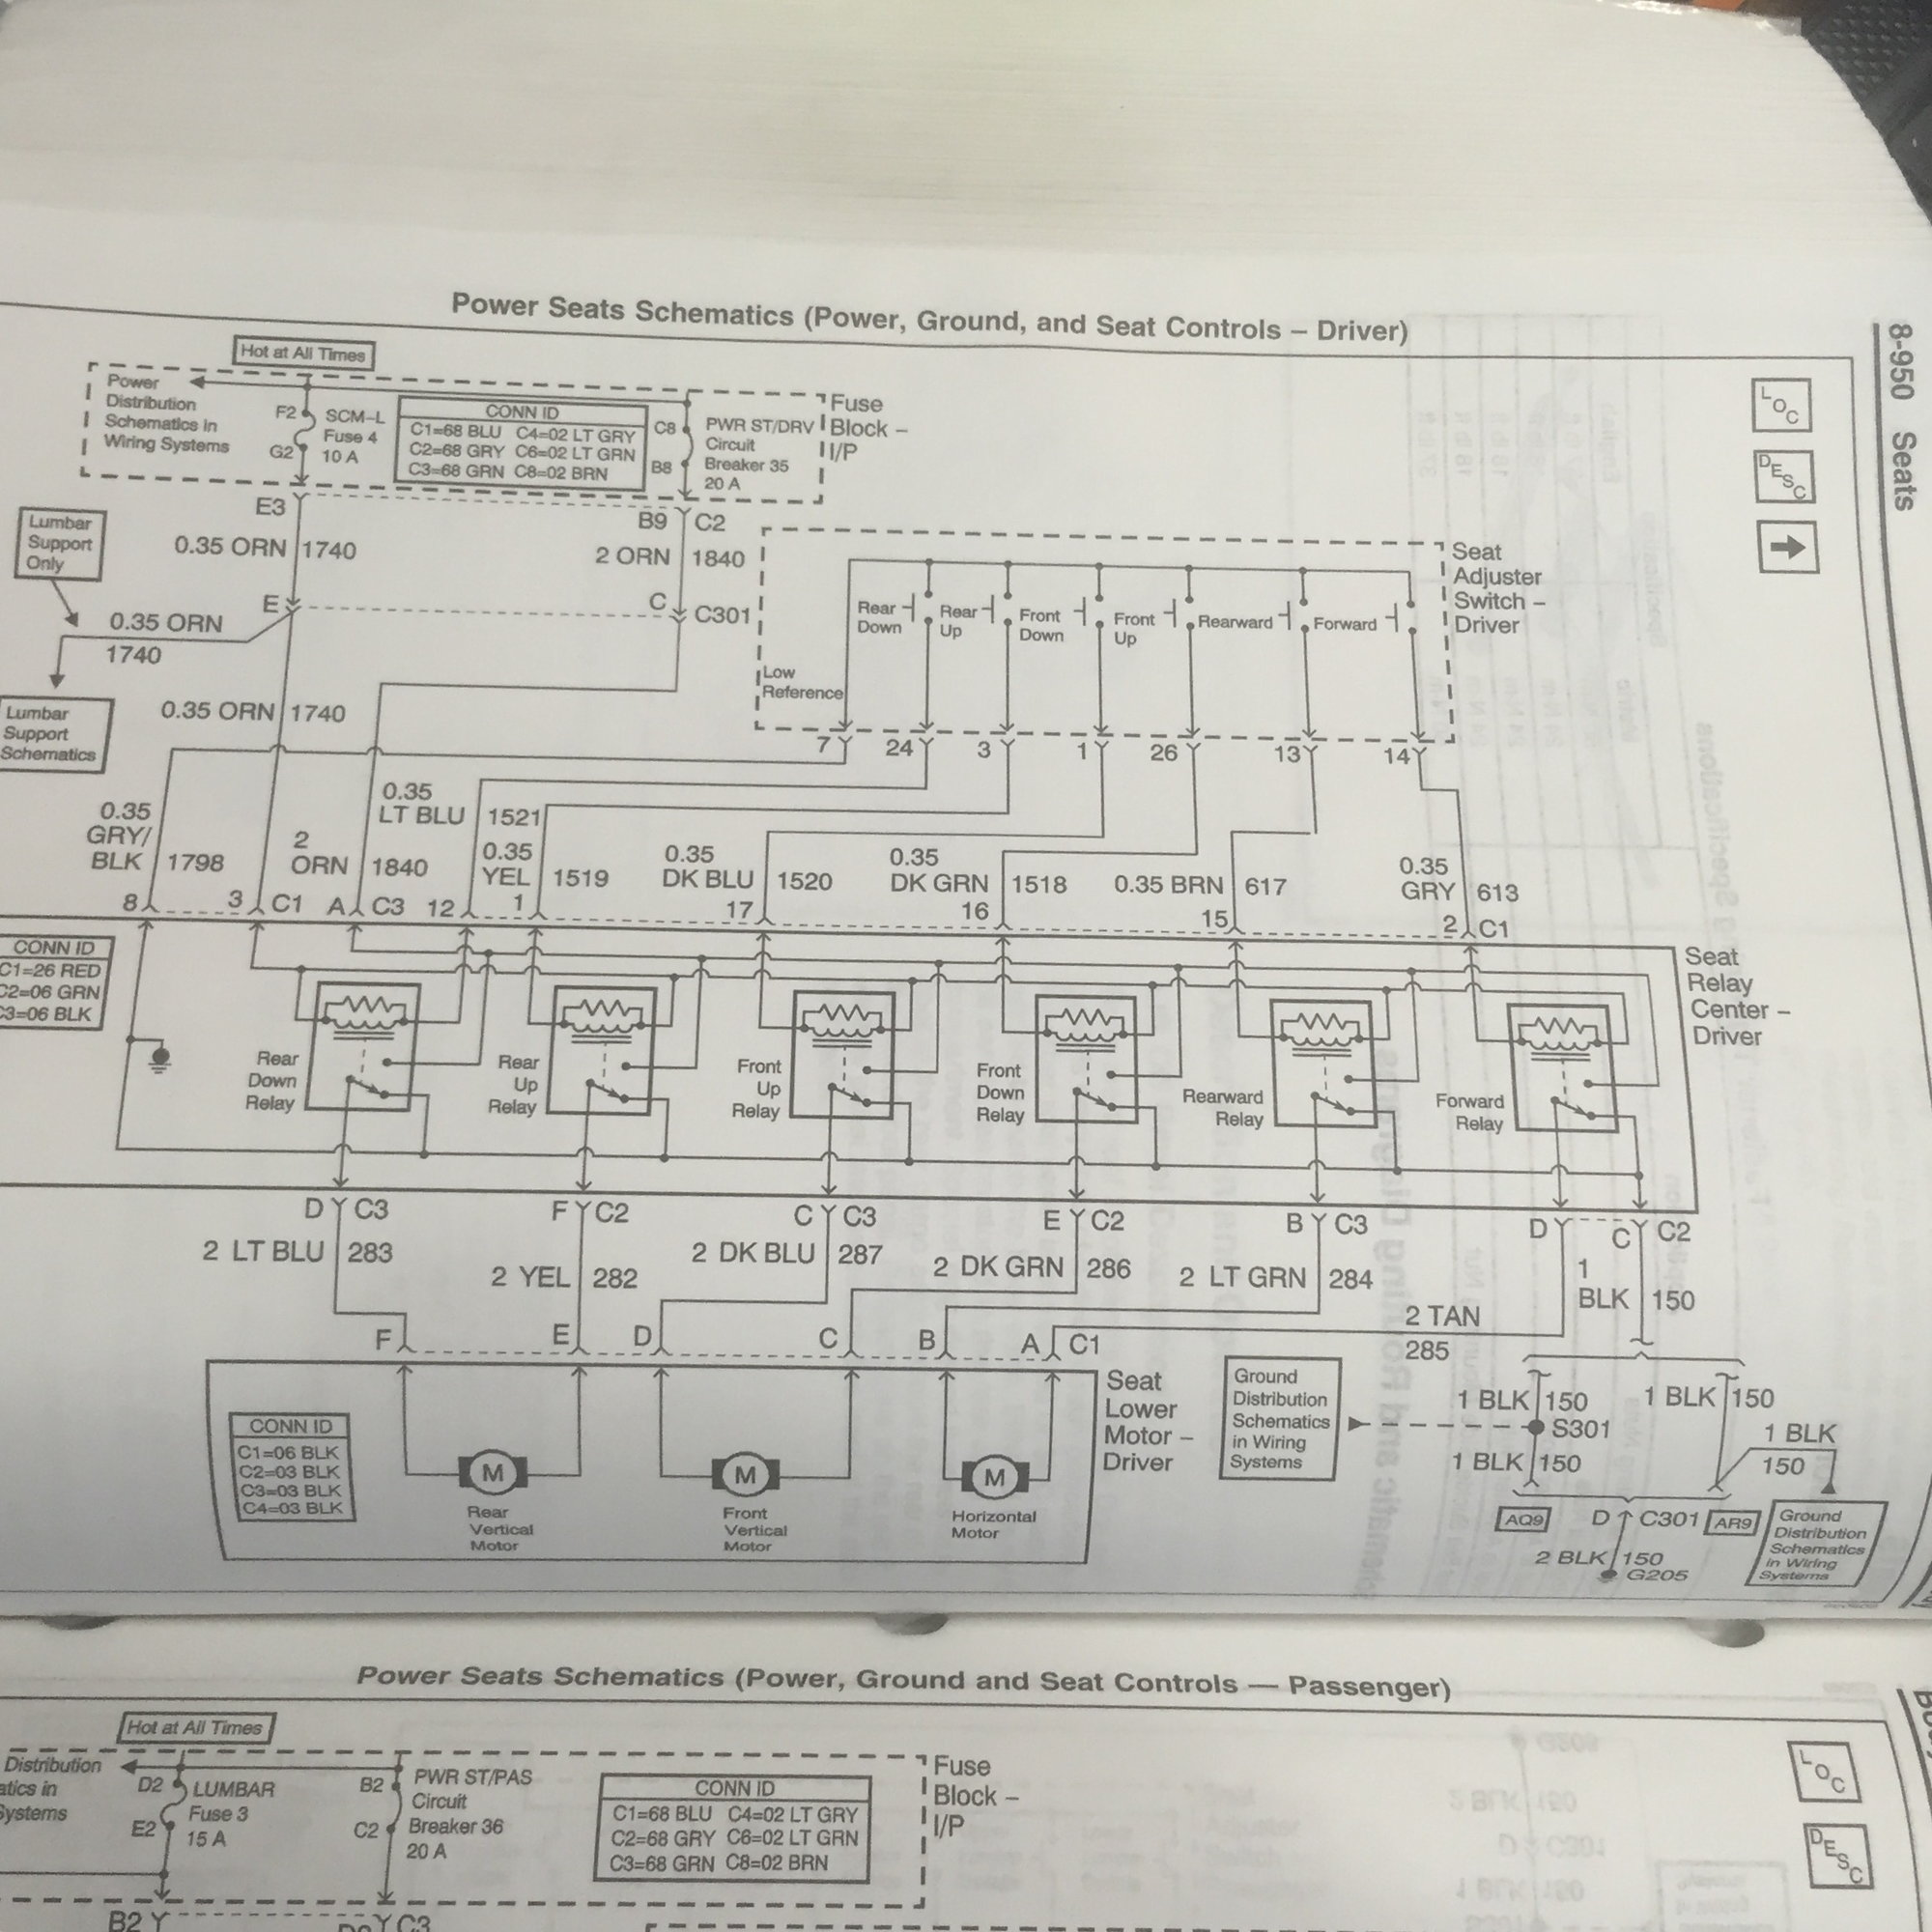 hight resolution of 1981 corvette power seat wiring diagram wiring diagram center chevrolet gmchevroletcorvette1968powerseatswiringdiagram